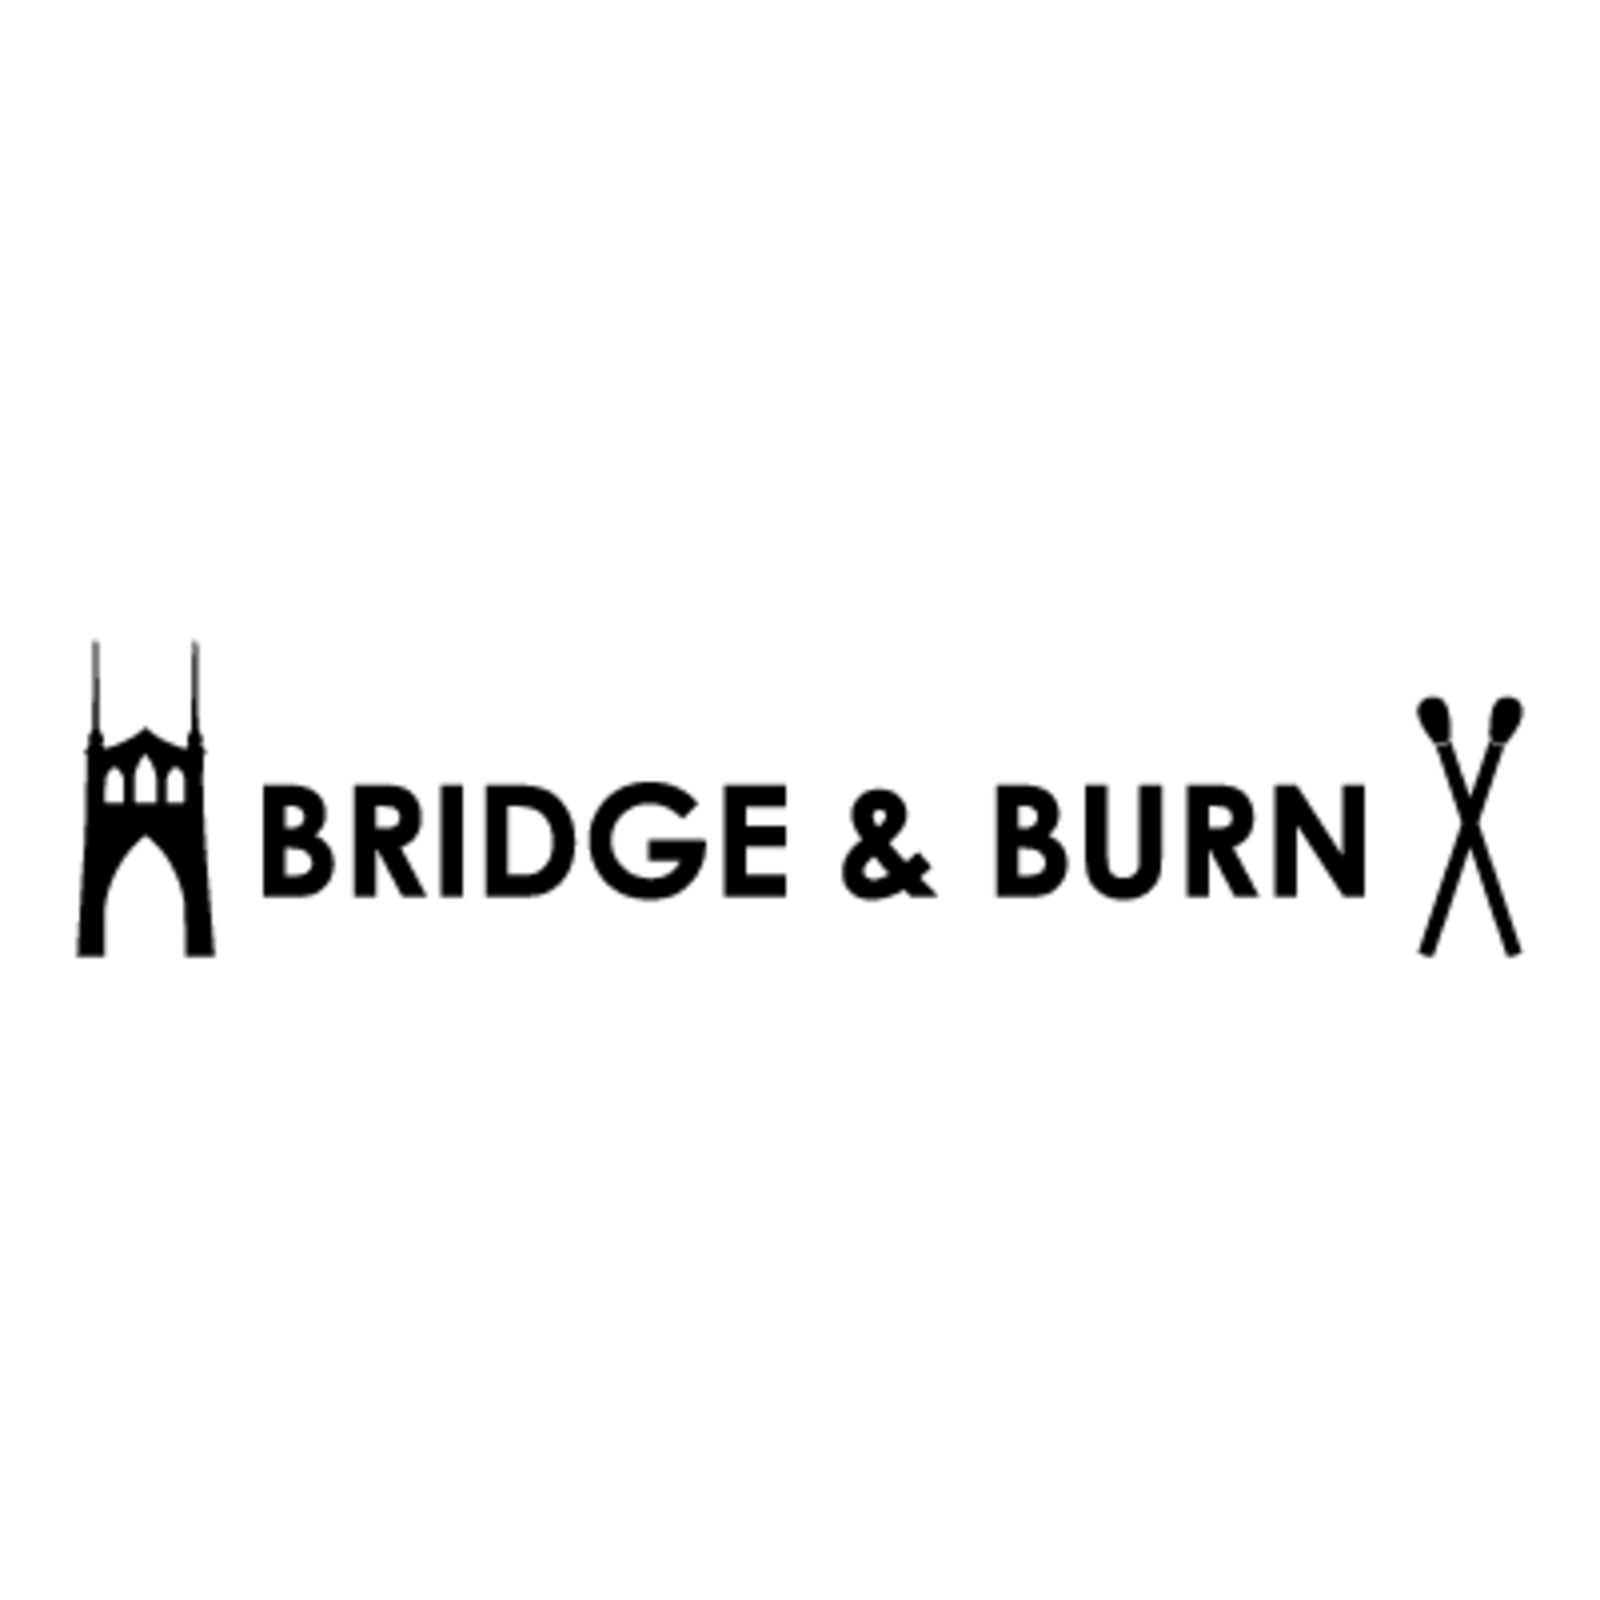 BRIDGE & BURN